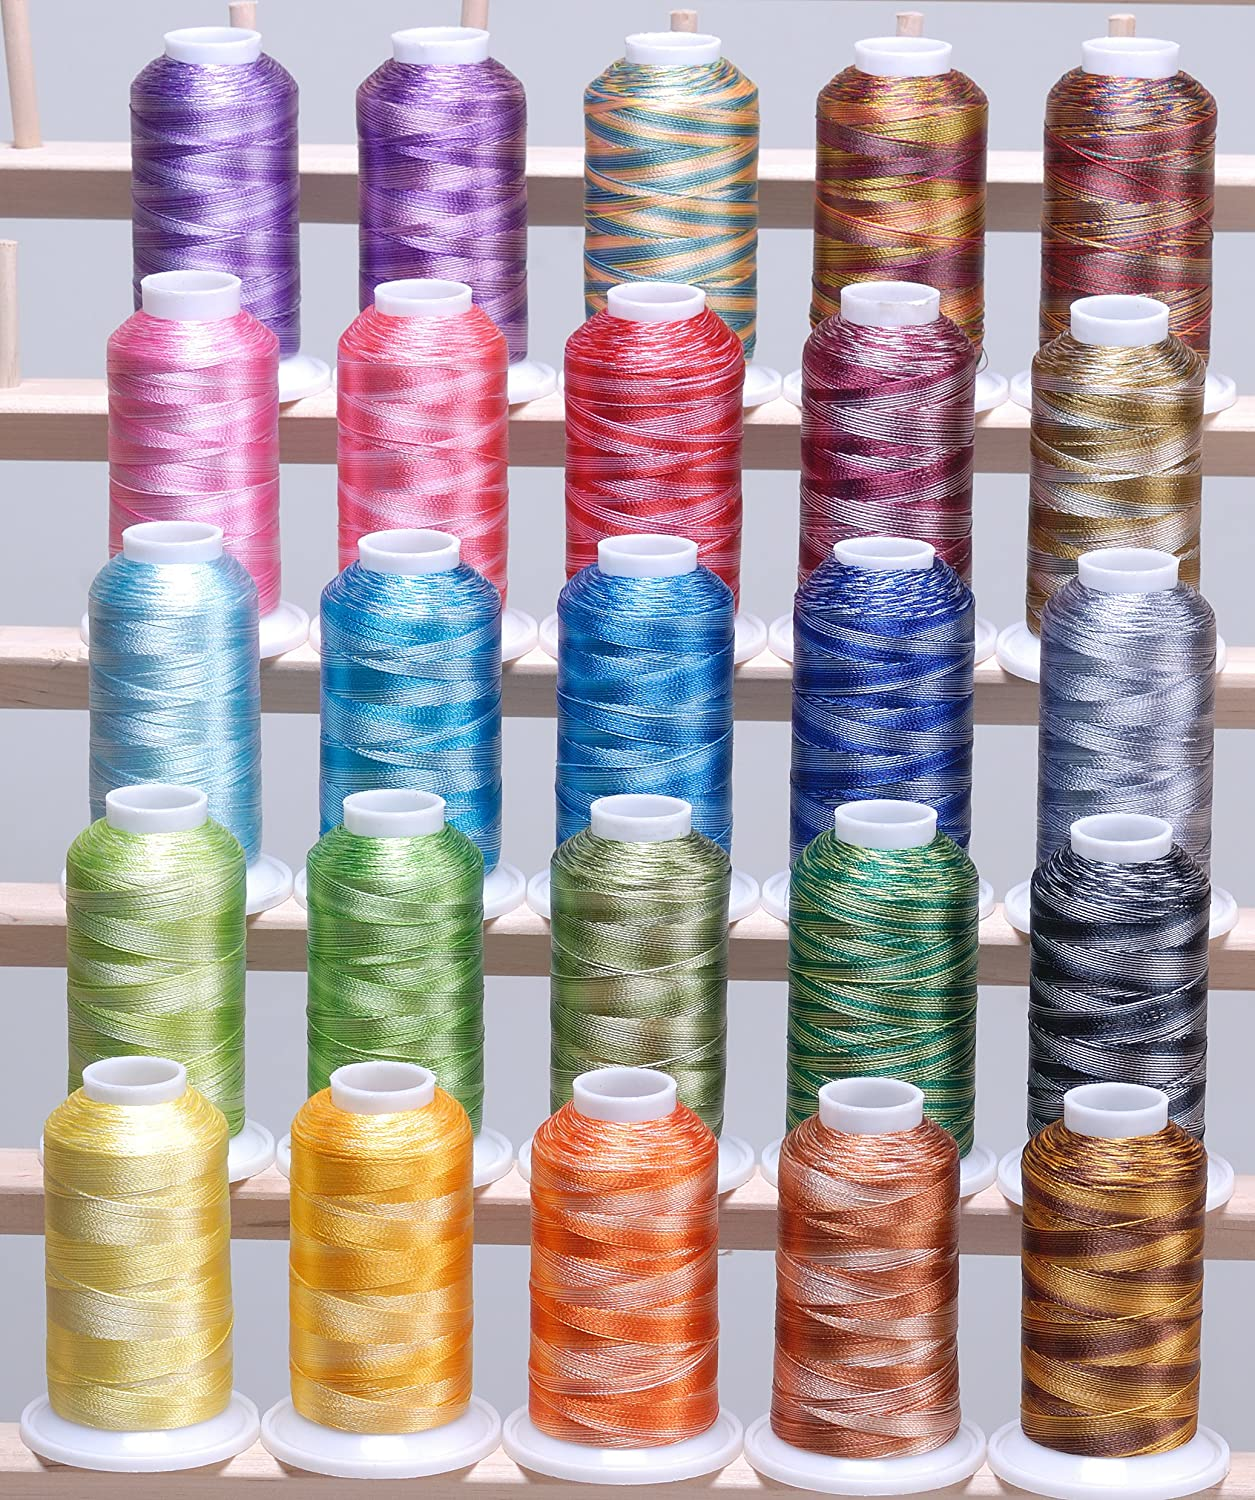 ThreadNanny LARGE 25 Cones Variegated Colors Polyester Machine Embroidery Machine Thread for Brother Babylock Janome Singer Pfaff Husqvarna Bernina Machines by ThreadNanny